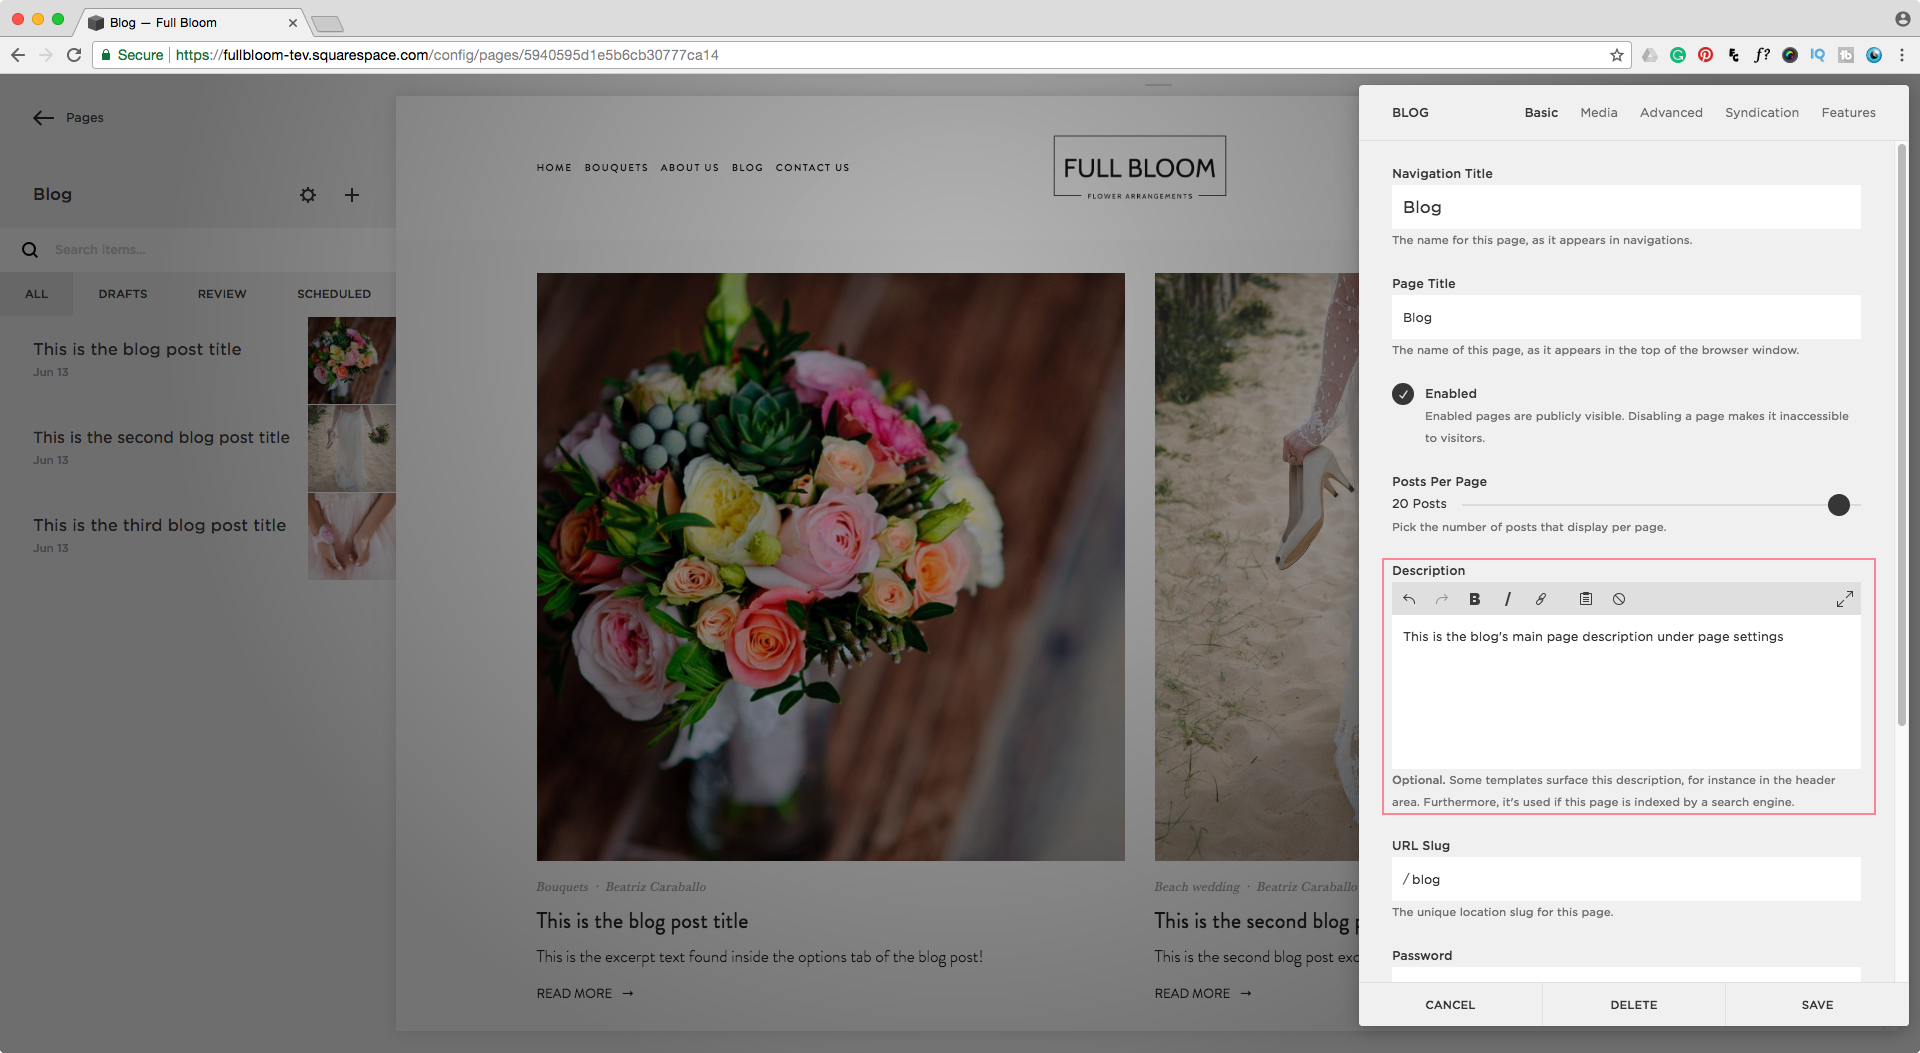 Editing the page description of a blog page in Squarespace